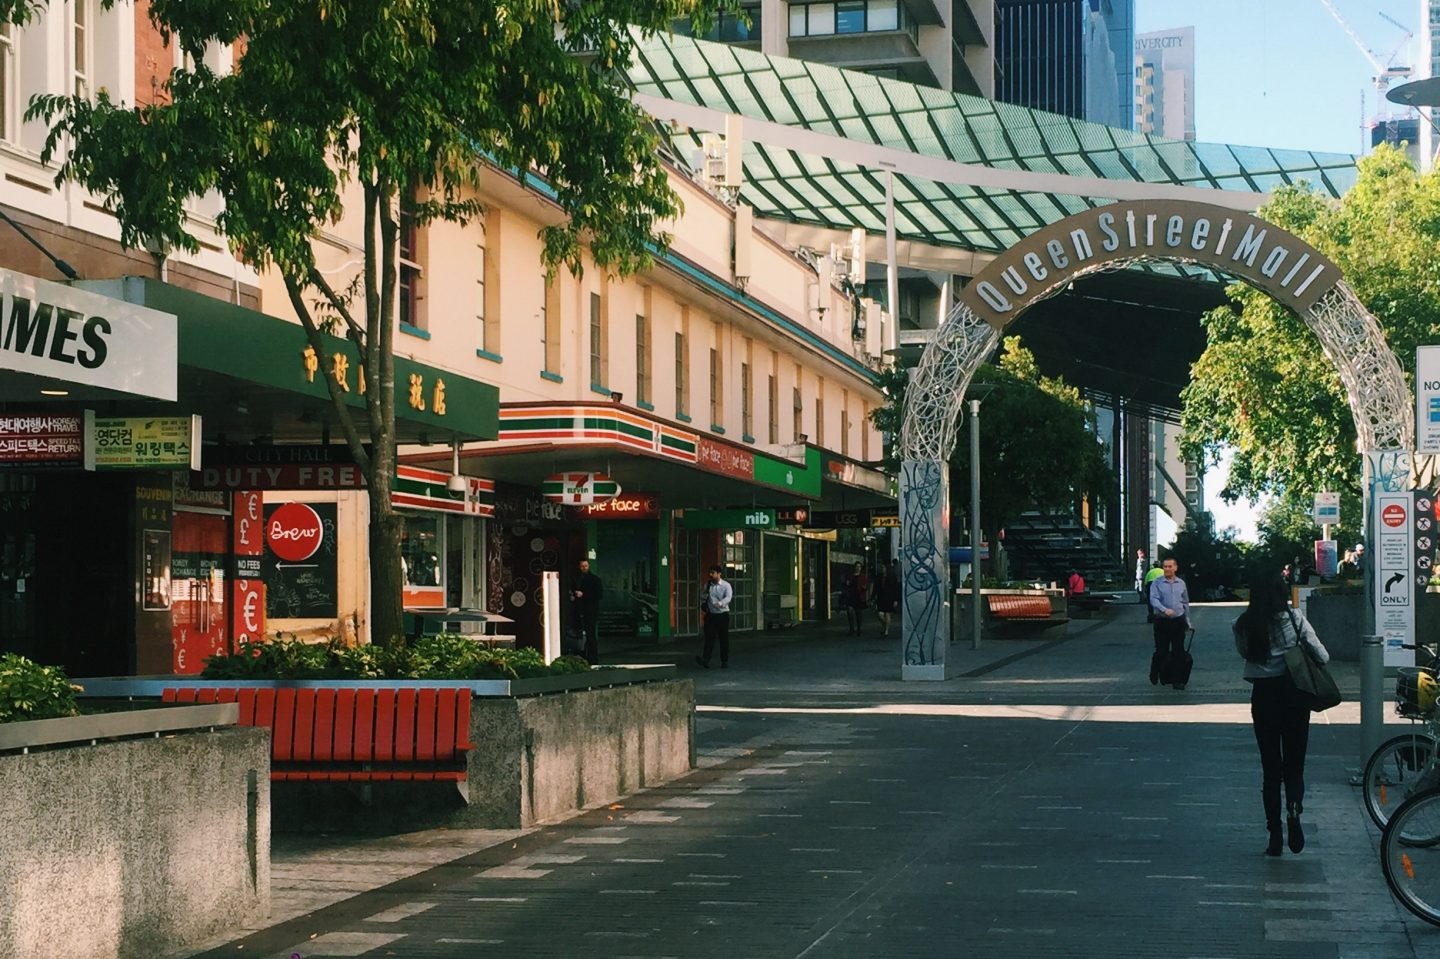 The Queen Street Mall in Brisbane, Australia